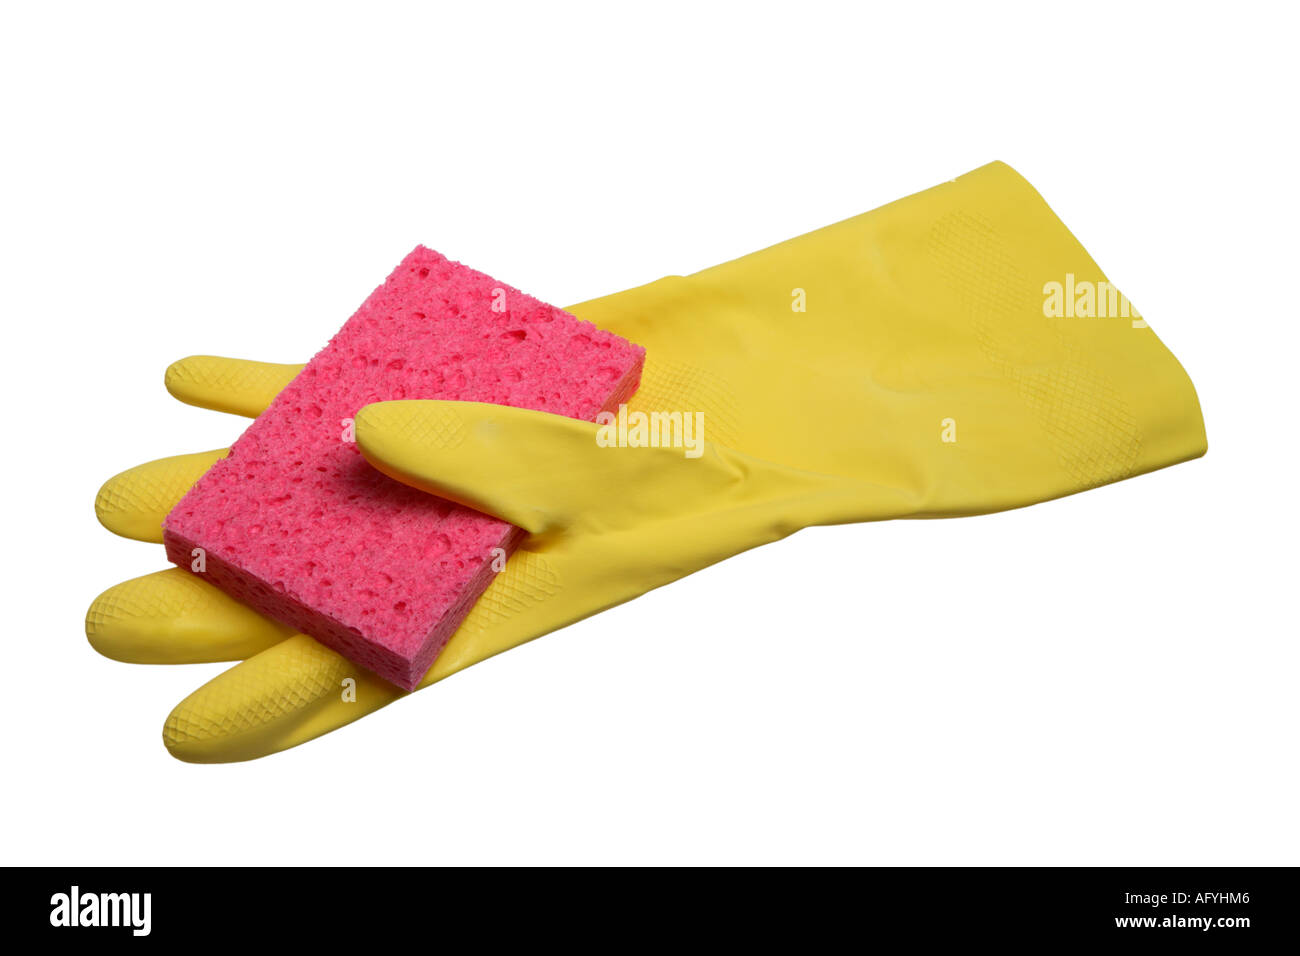 Rubber Glove and Sponge - Stock Image